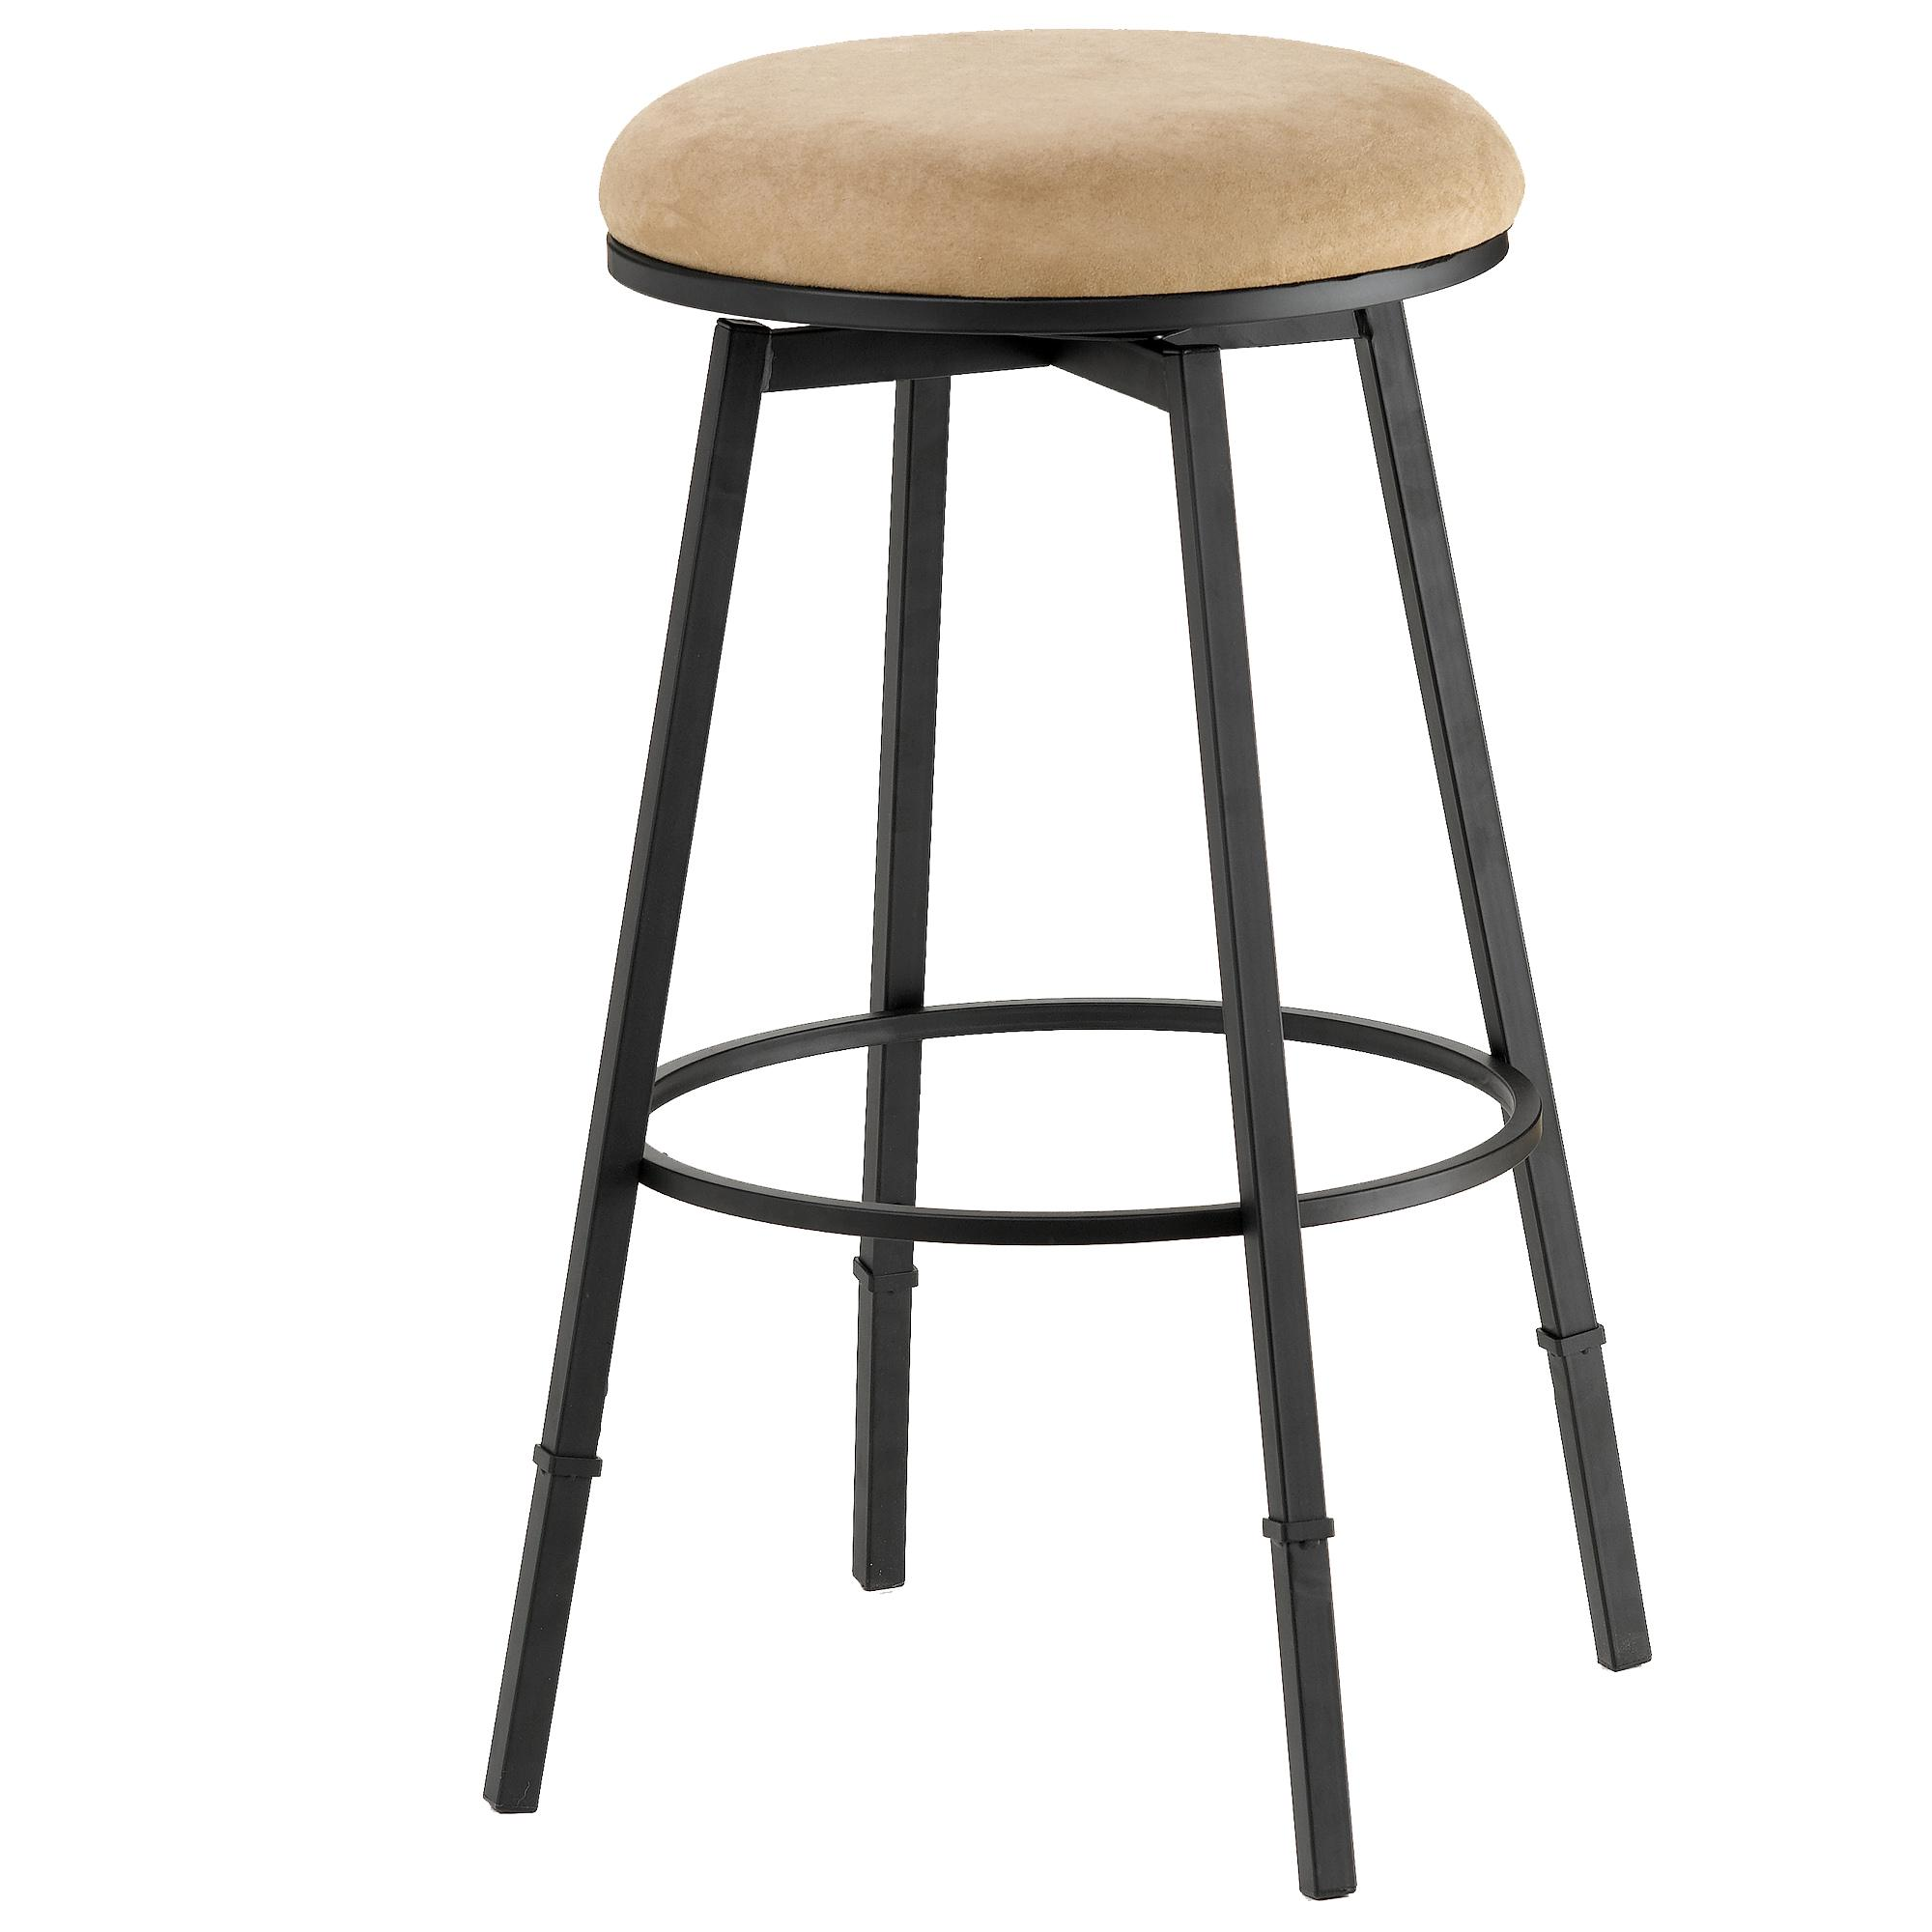 Hillsdale Backless Bar Stools Sanders Adjustable Backless  : products2Fhillsdale2Fcolor2Fbackless20bar20stools4149 831 b from www.wayside-furniture.com size 2000 x 2000 jpeg 163kB